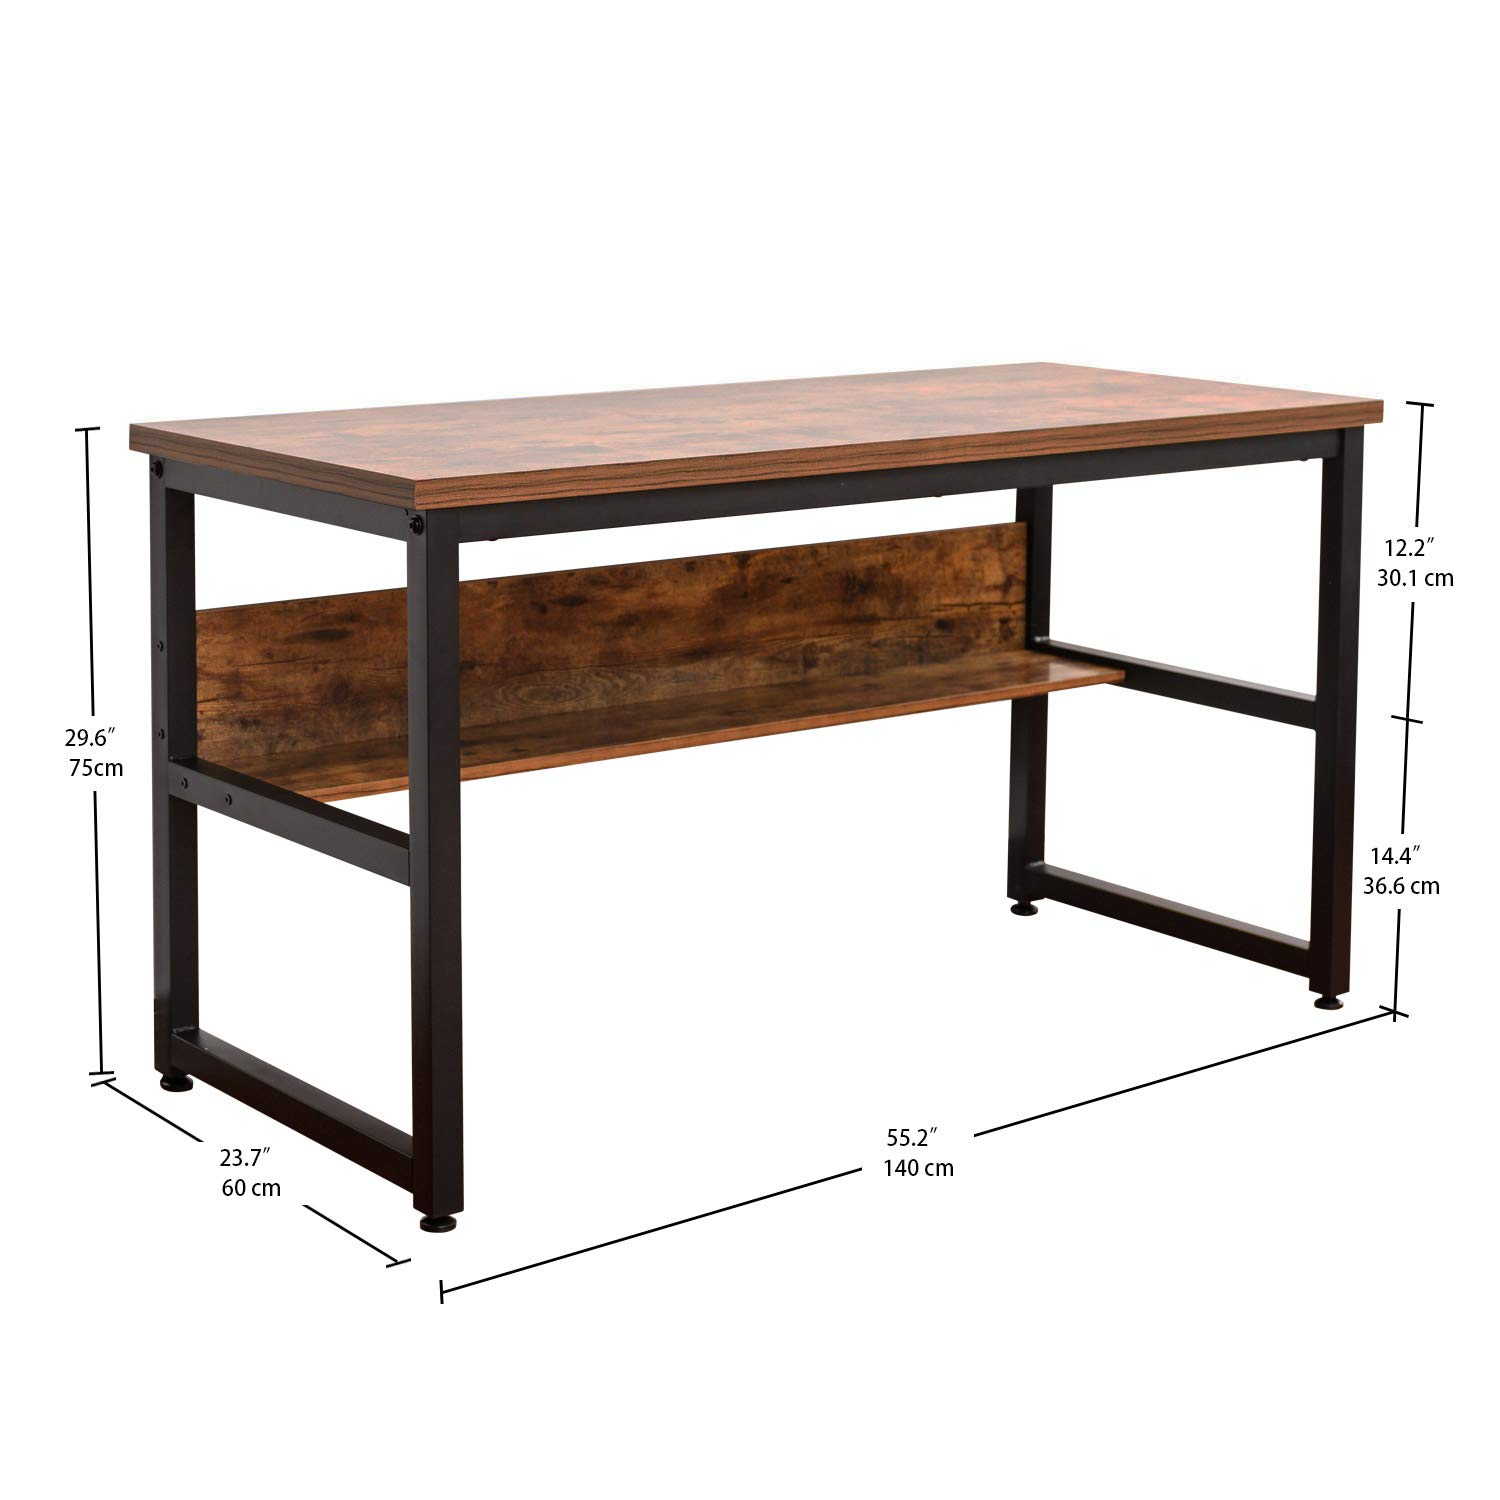 IRONCK Computer Desk 55'' with Bookshelf, Office Desk, Writing Desk, Wood and Metal Frame, Industrial Style, Study Table Workstation for Home Office Furniture by IRONCK (Image #3)